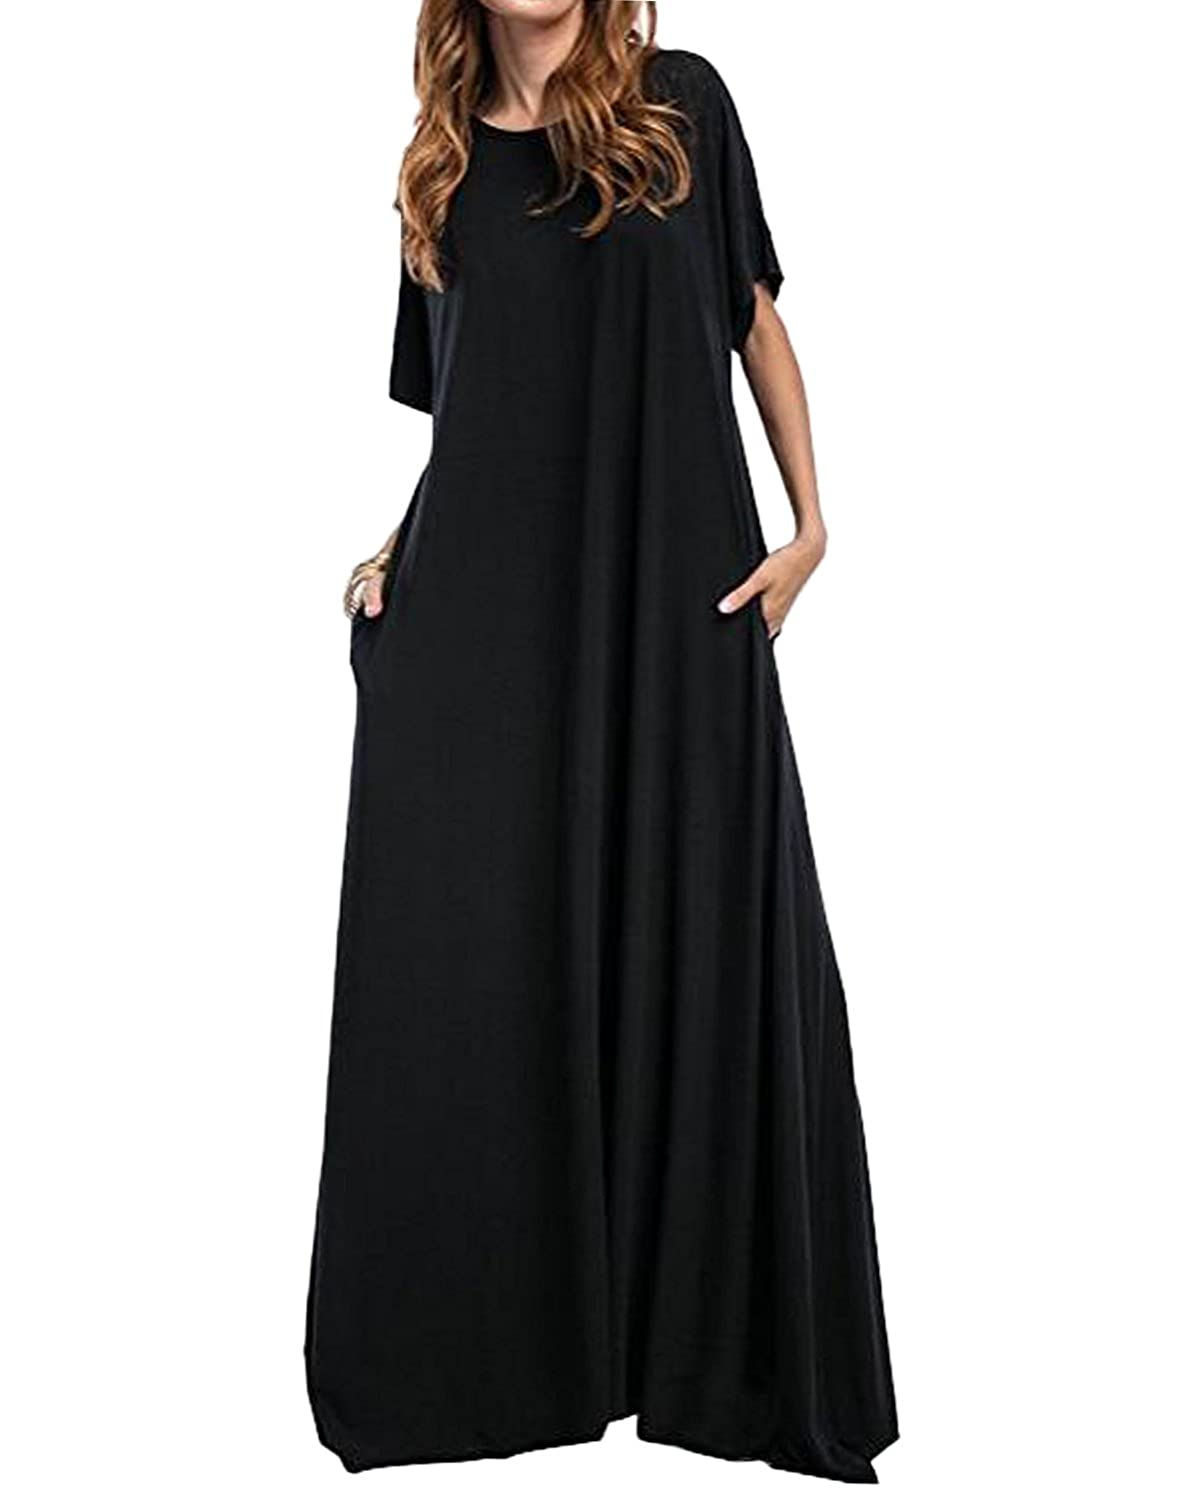 37d17032b76d Kidsform Women's Loose Maxi Dress Short Sleeve Casual Kaftan Party Long  Dresses Plain Solid with Pockets at Amazon Women's Clothing store: